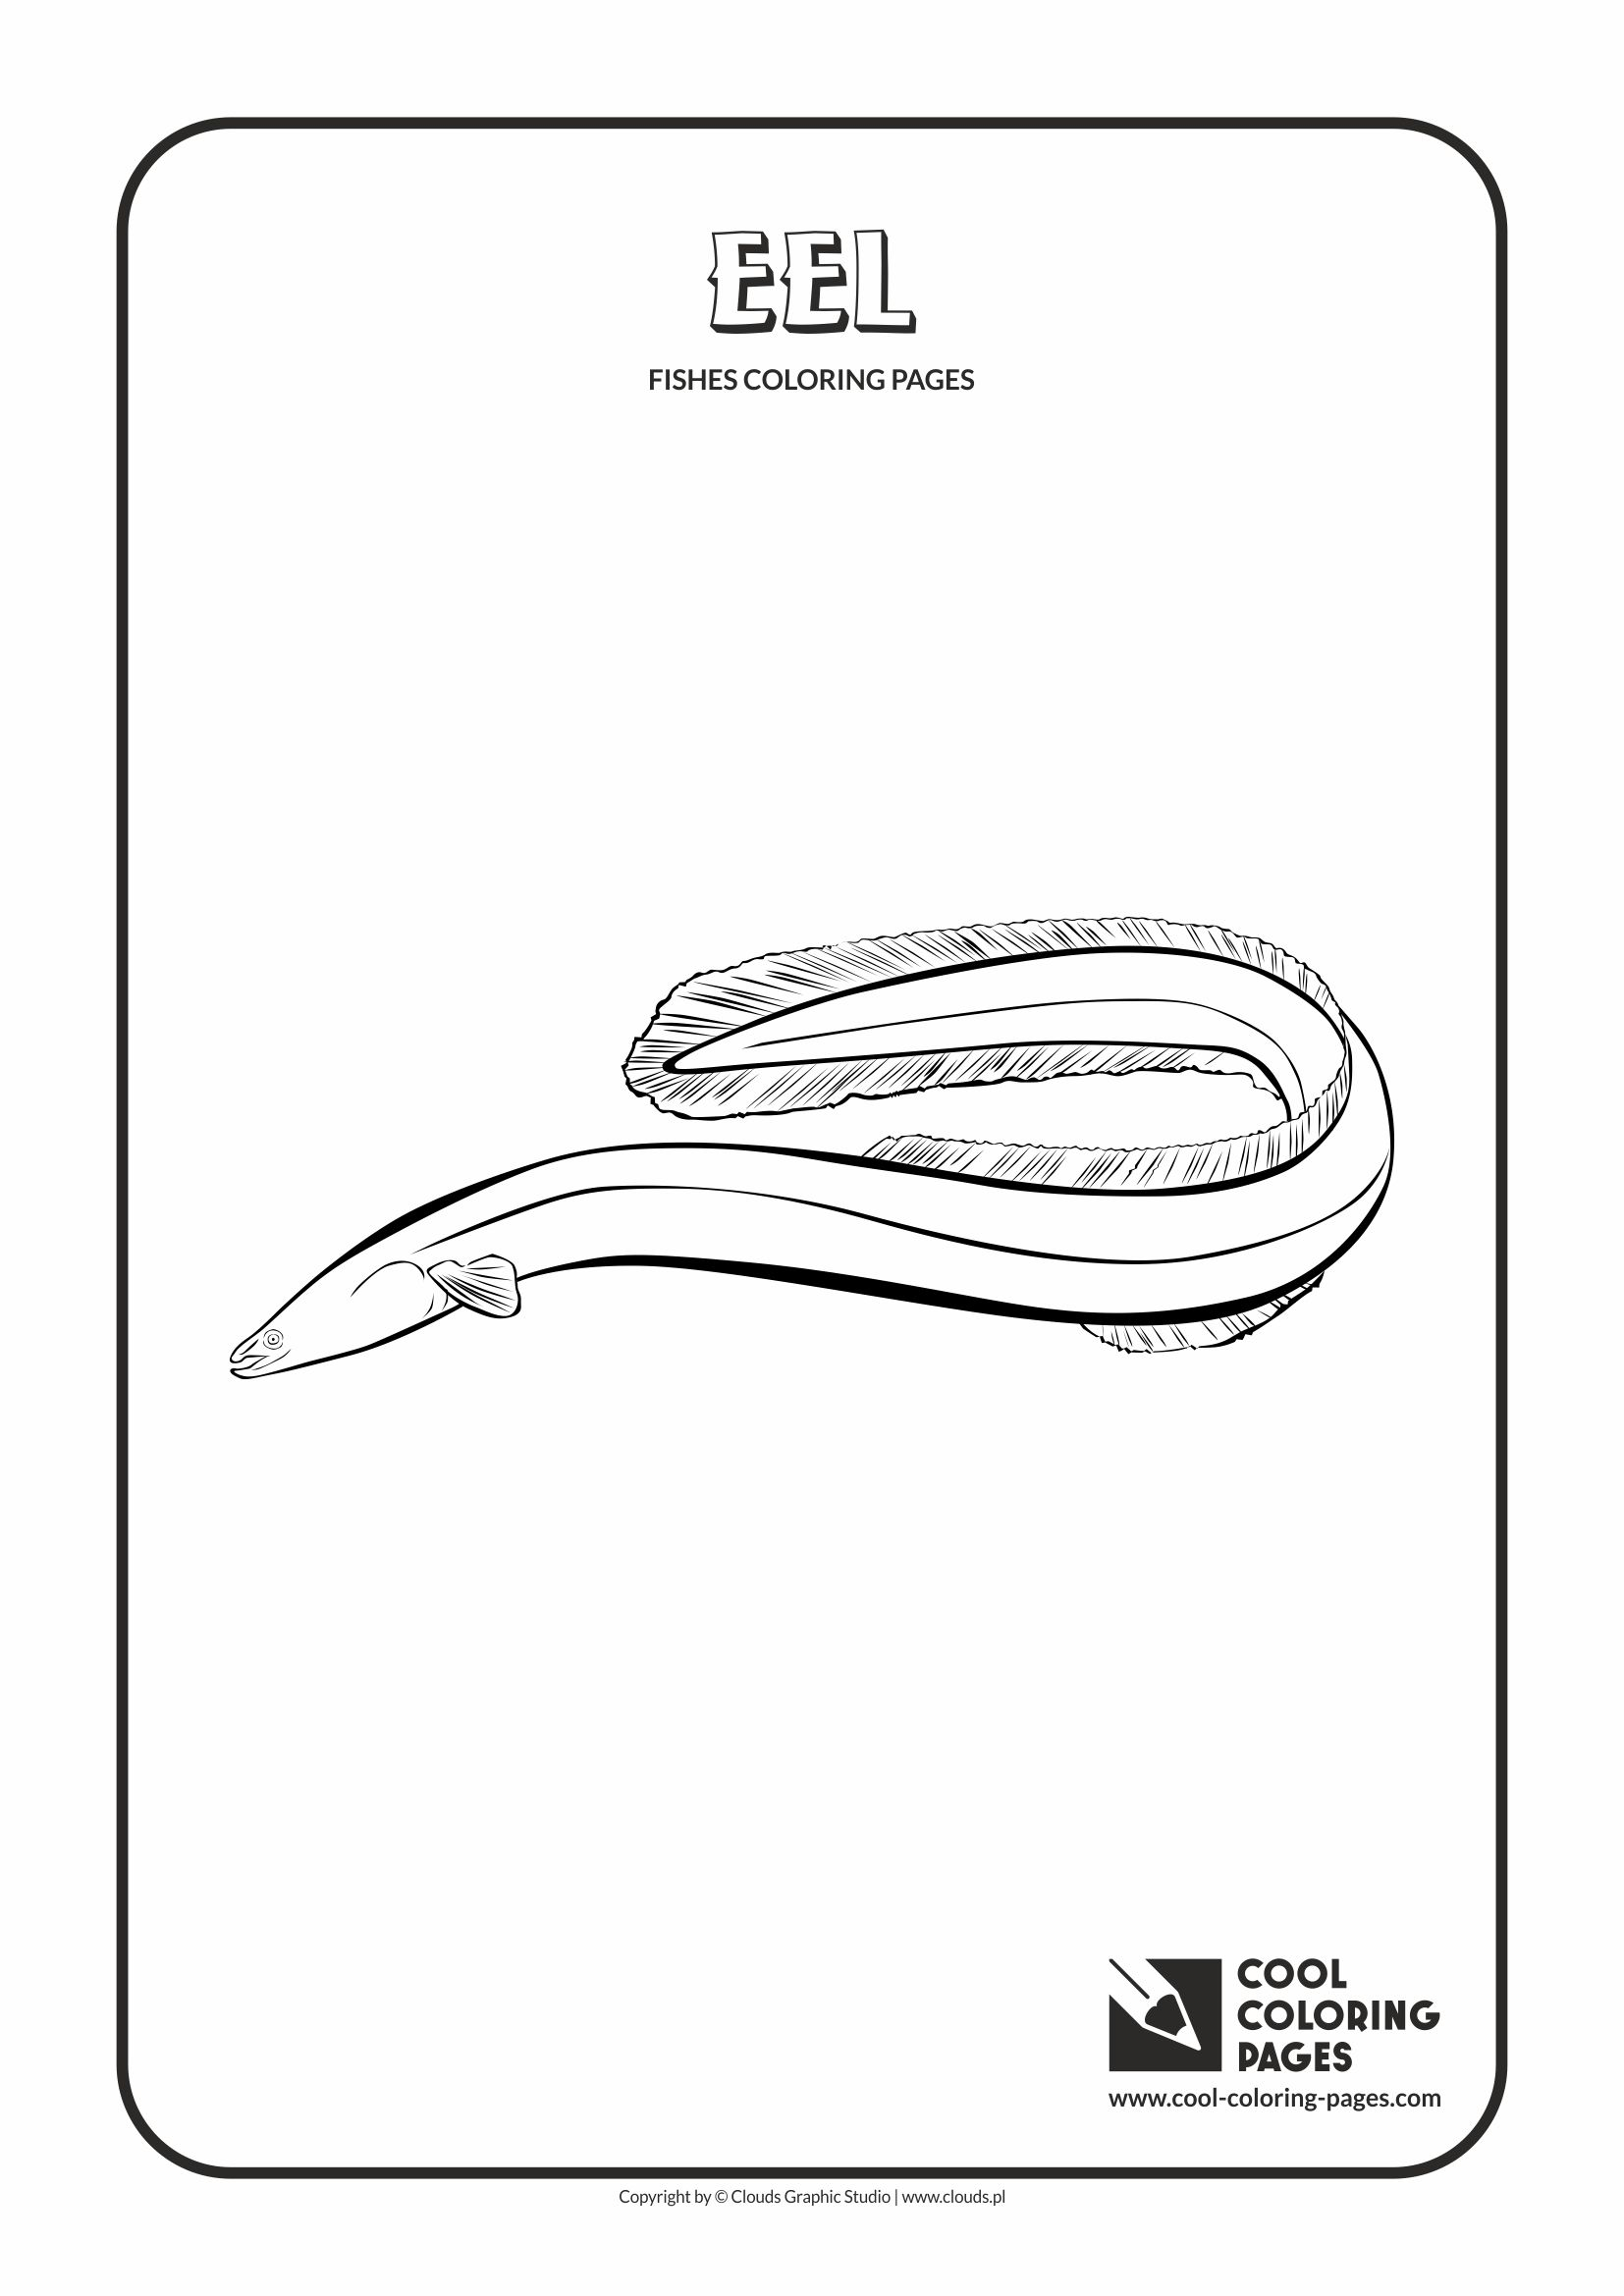 Cool Coloring Pages - Animals / Eel / Coloring page with eel